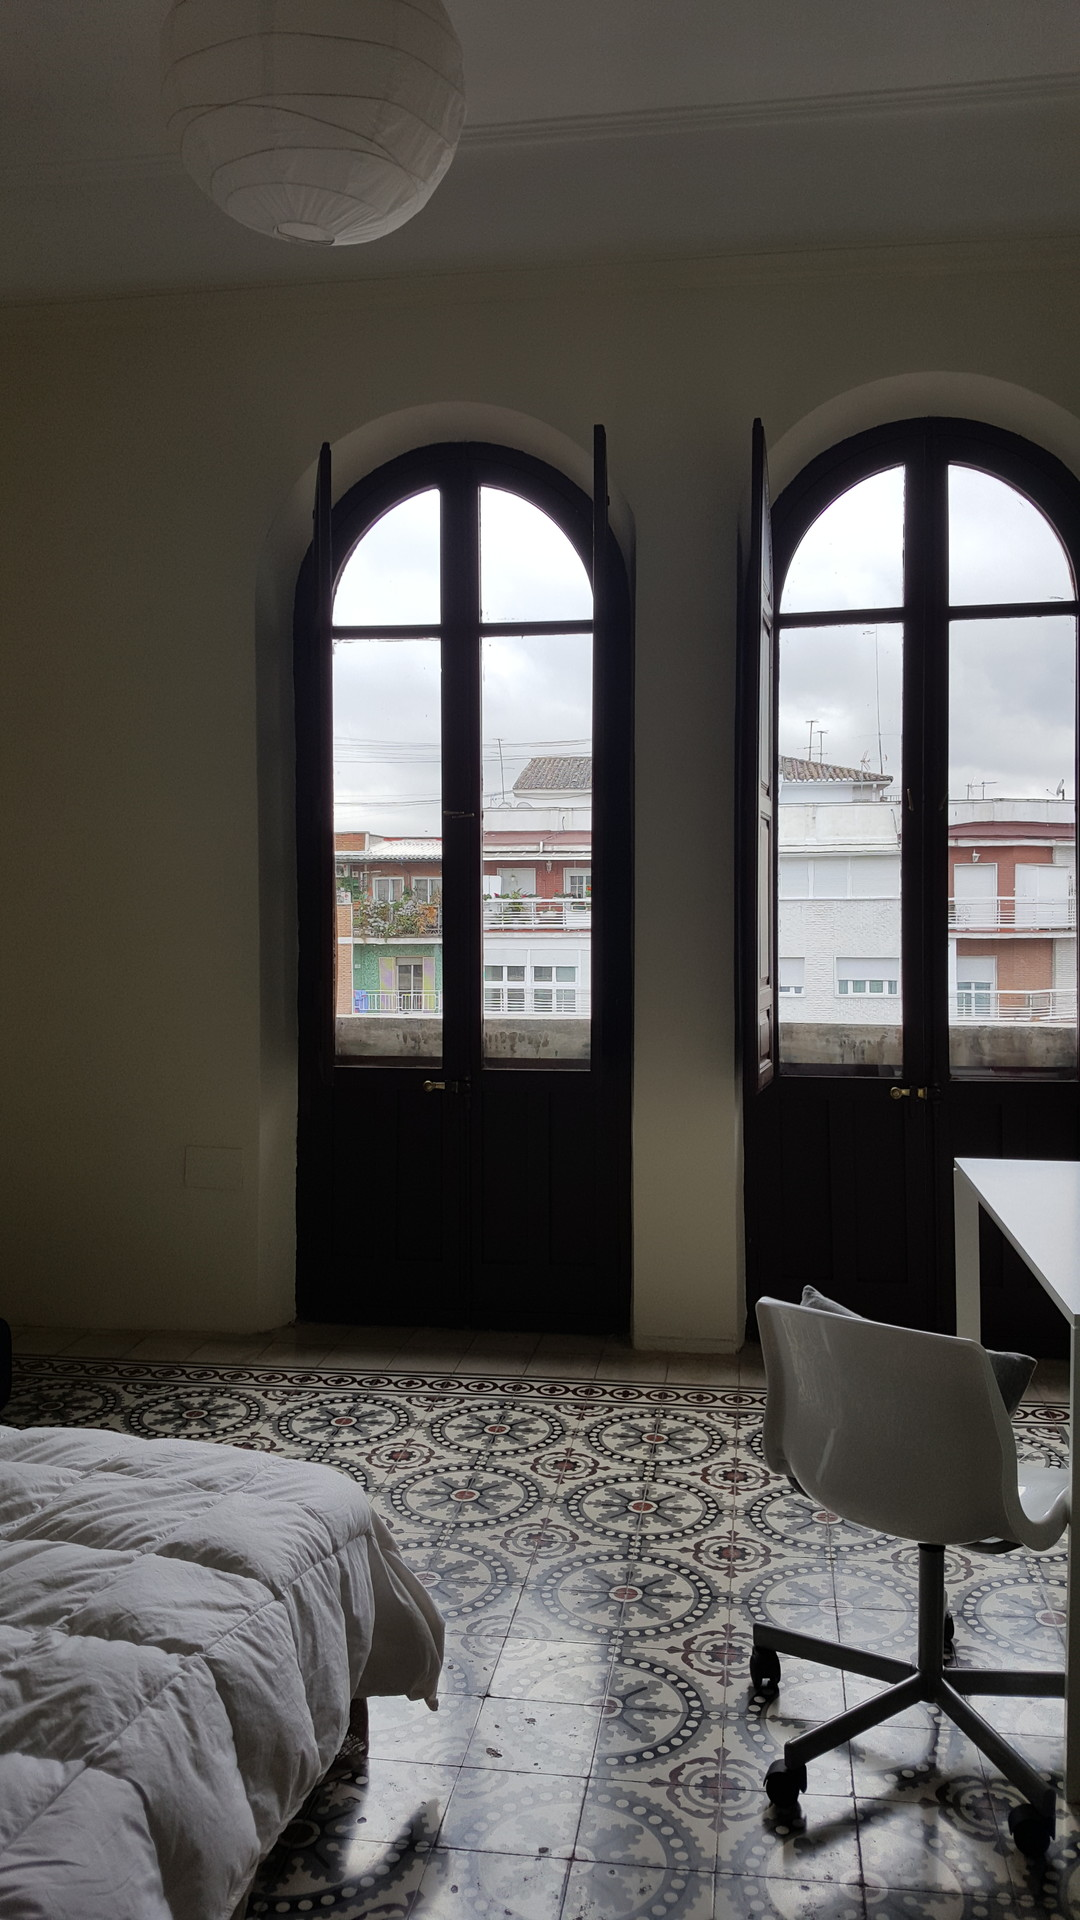 Comfortable single Room at Centro (Av. de la Constitucion - Room